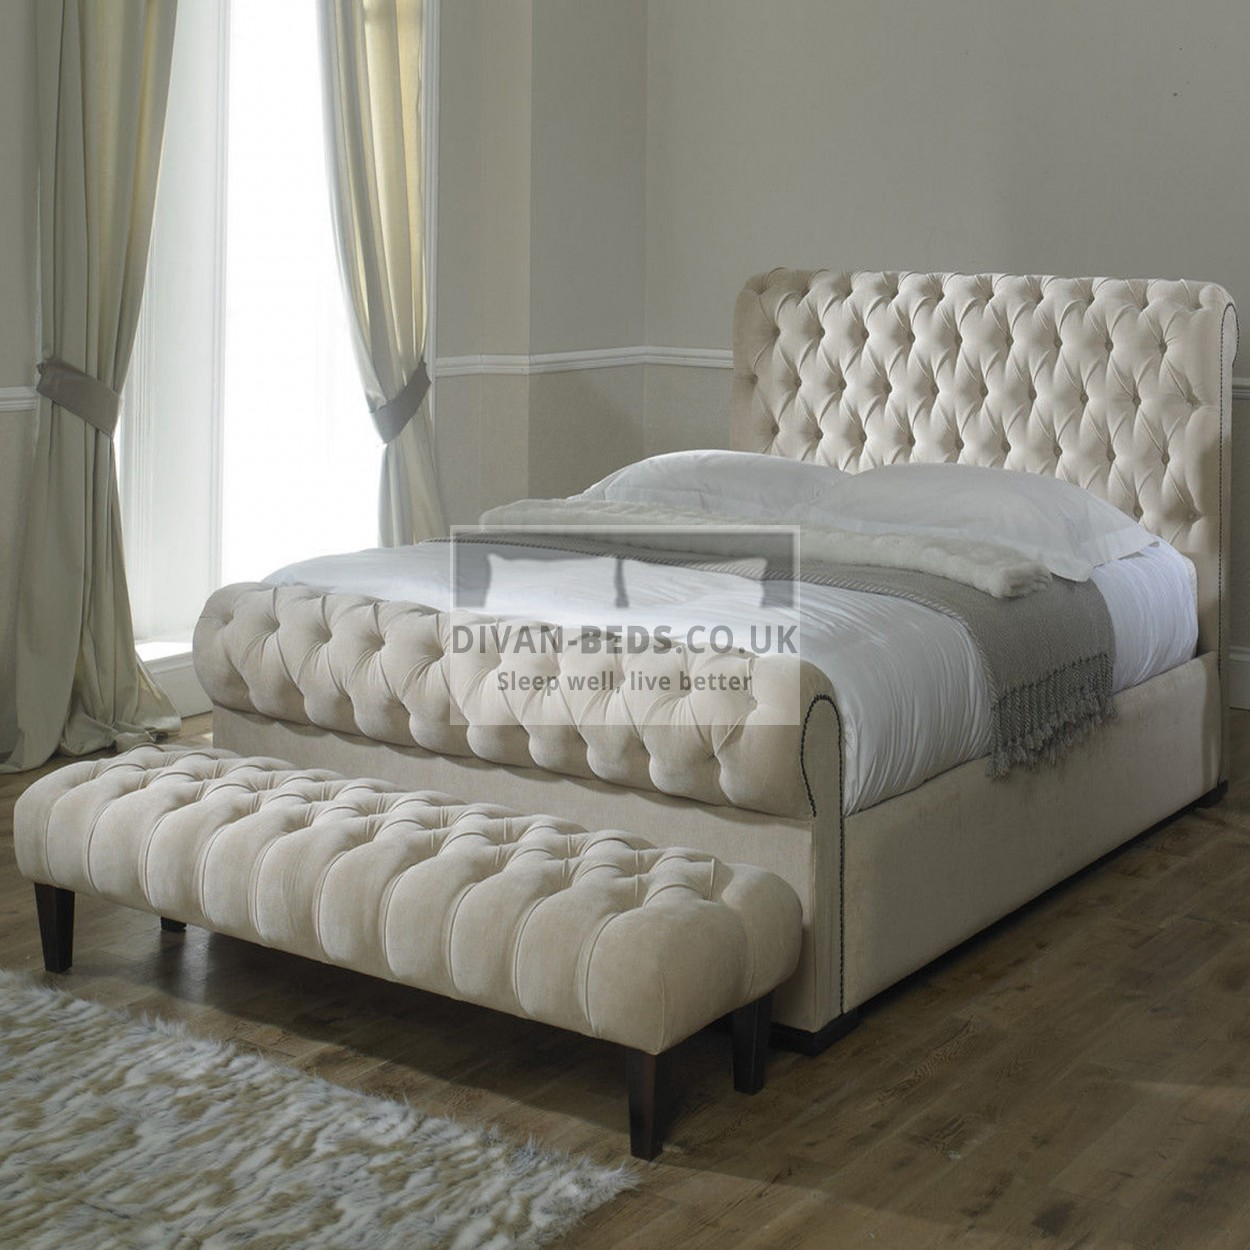 luxury beds frame be - photo #42